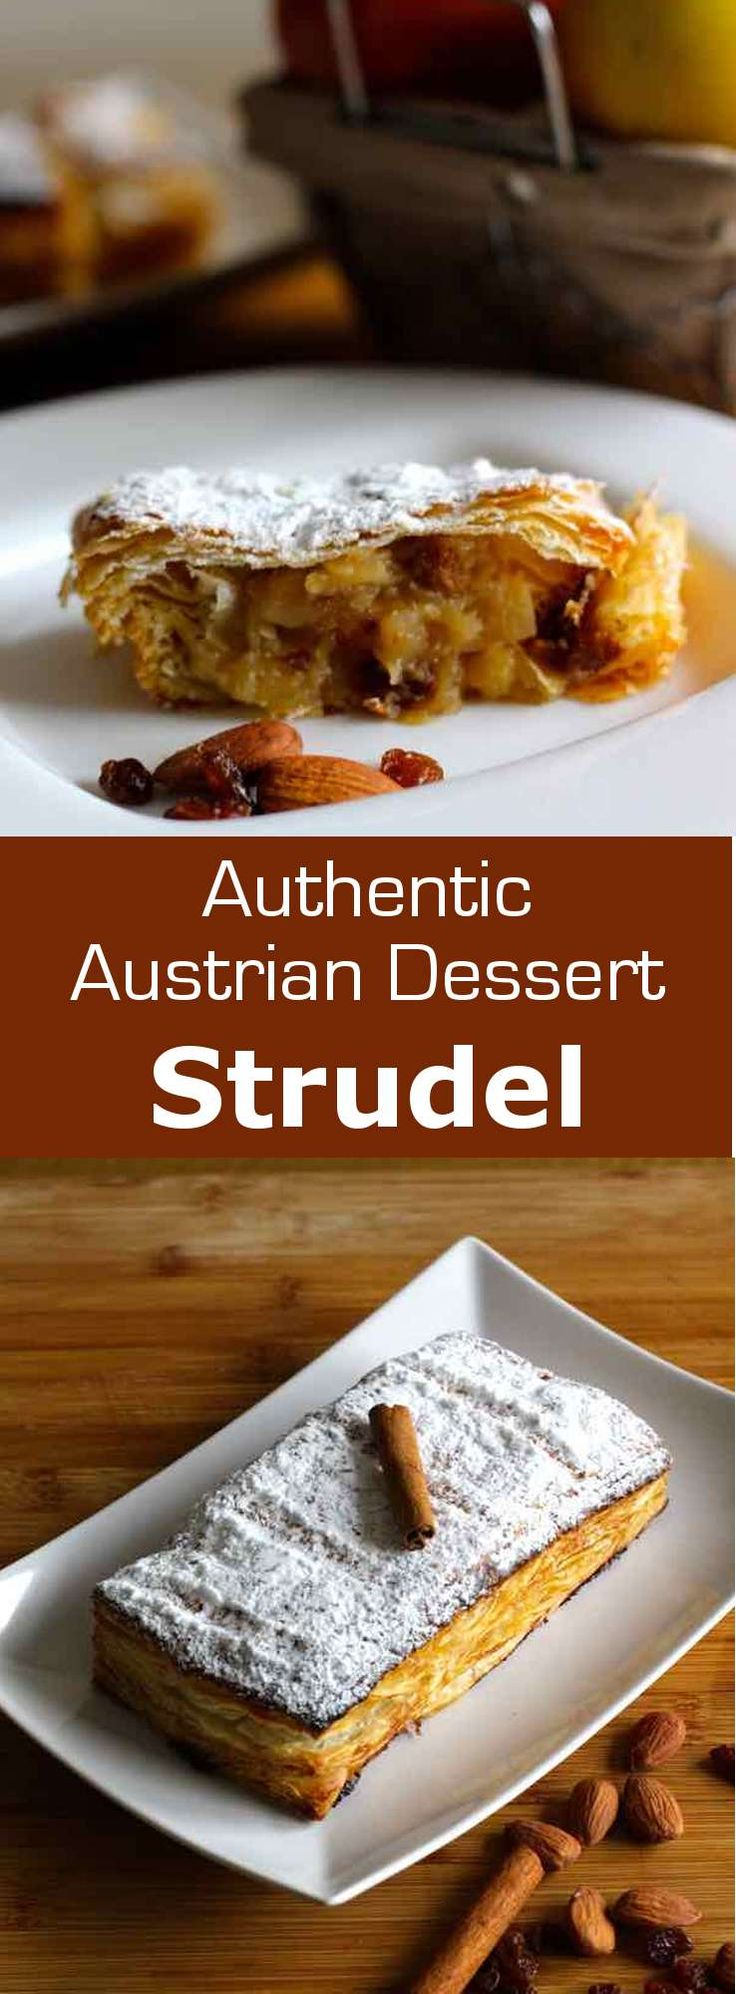 Apfelstrudel whose recipes somewhat vary from one country to another, is one of the jewels of Jewish Ashkenazi cuisine, especially on Rosh Hashanah. #Austria #Austrian #Ashkenazi #196flavors